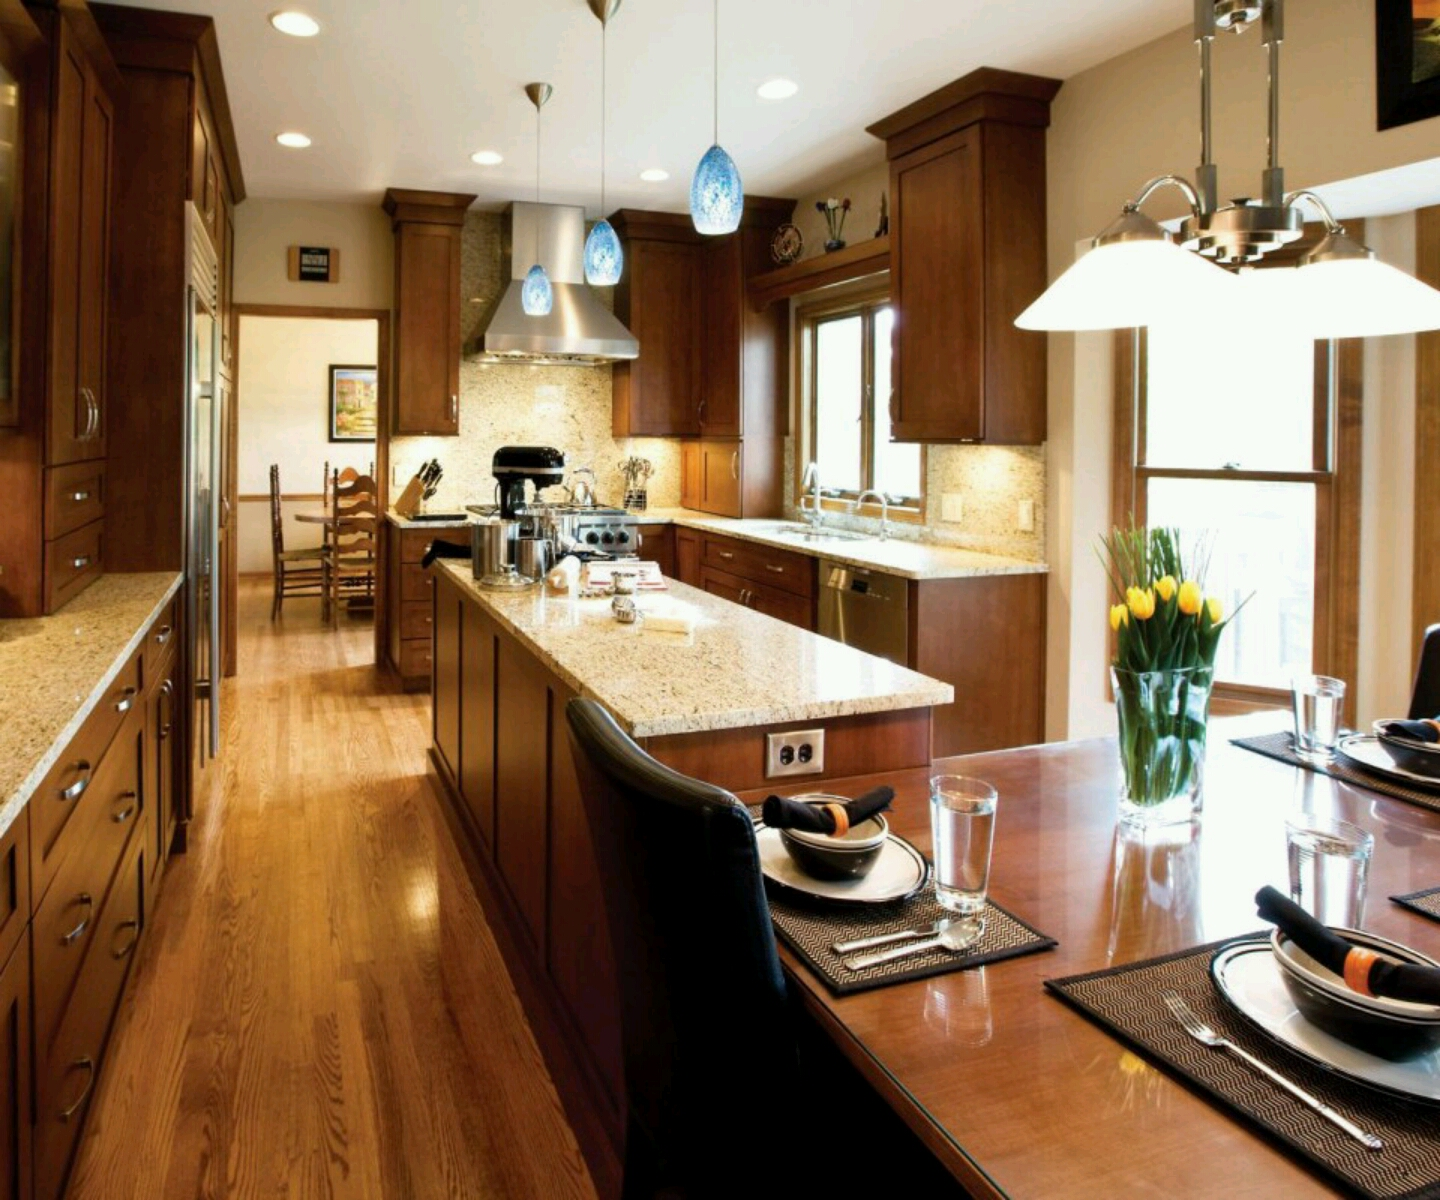 Kitchen News Kitchen Plans: New Home Designs Latest.: Kitchen Cabinets Designs Modern